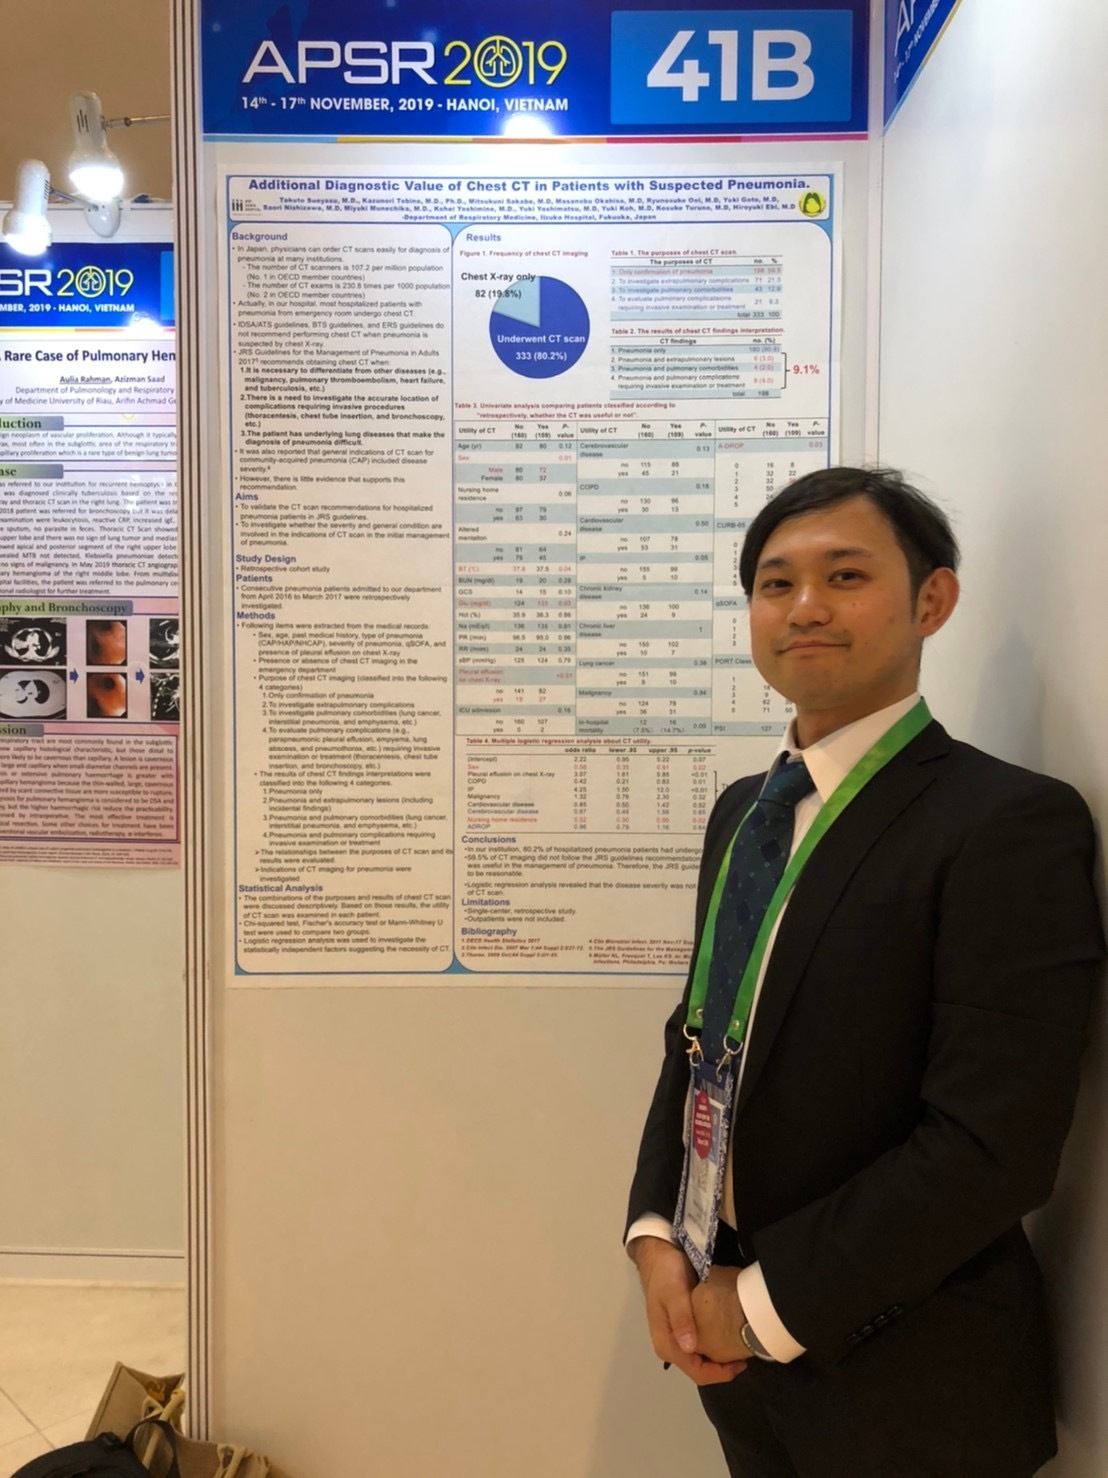 APSR2019に参加中です〜③ :High flow nasal cannula; Mechanism, principles and indication - 飯塚病院呼吸器内科ブログ